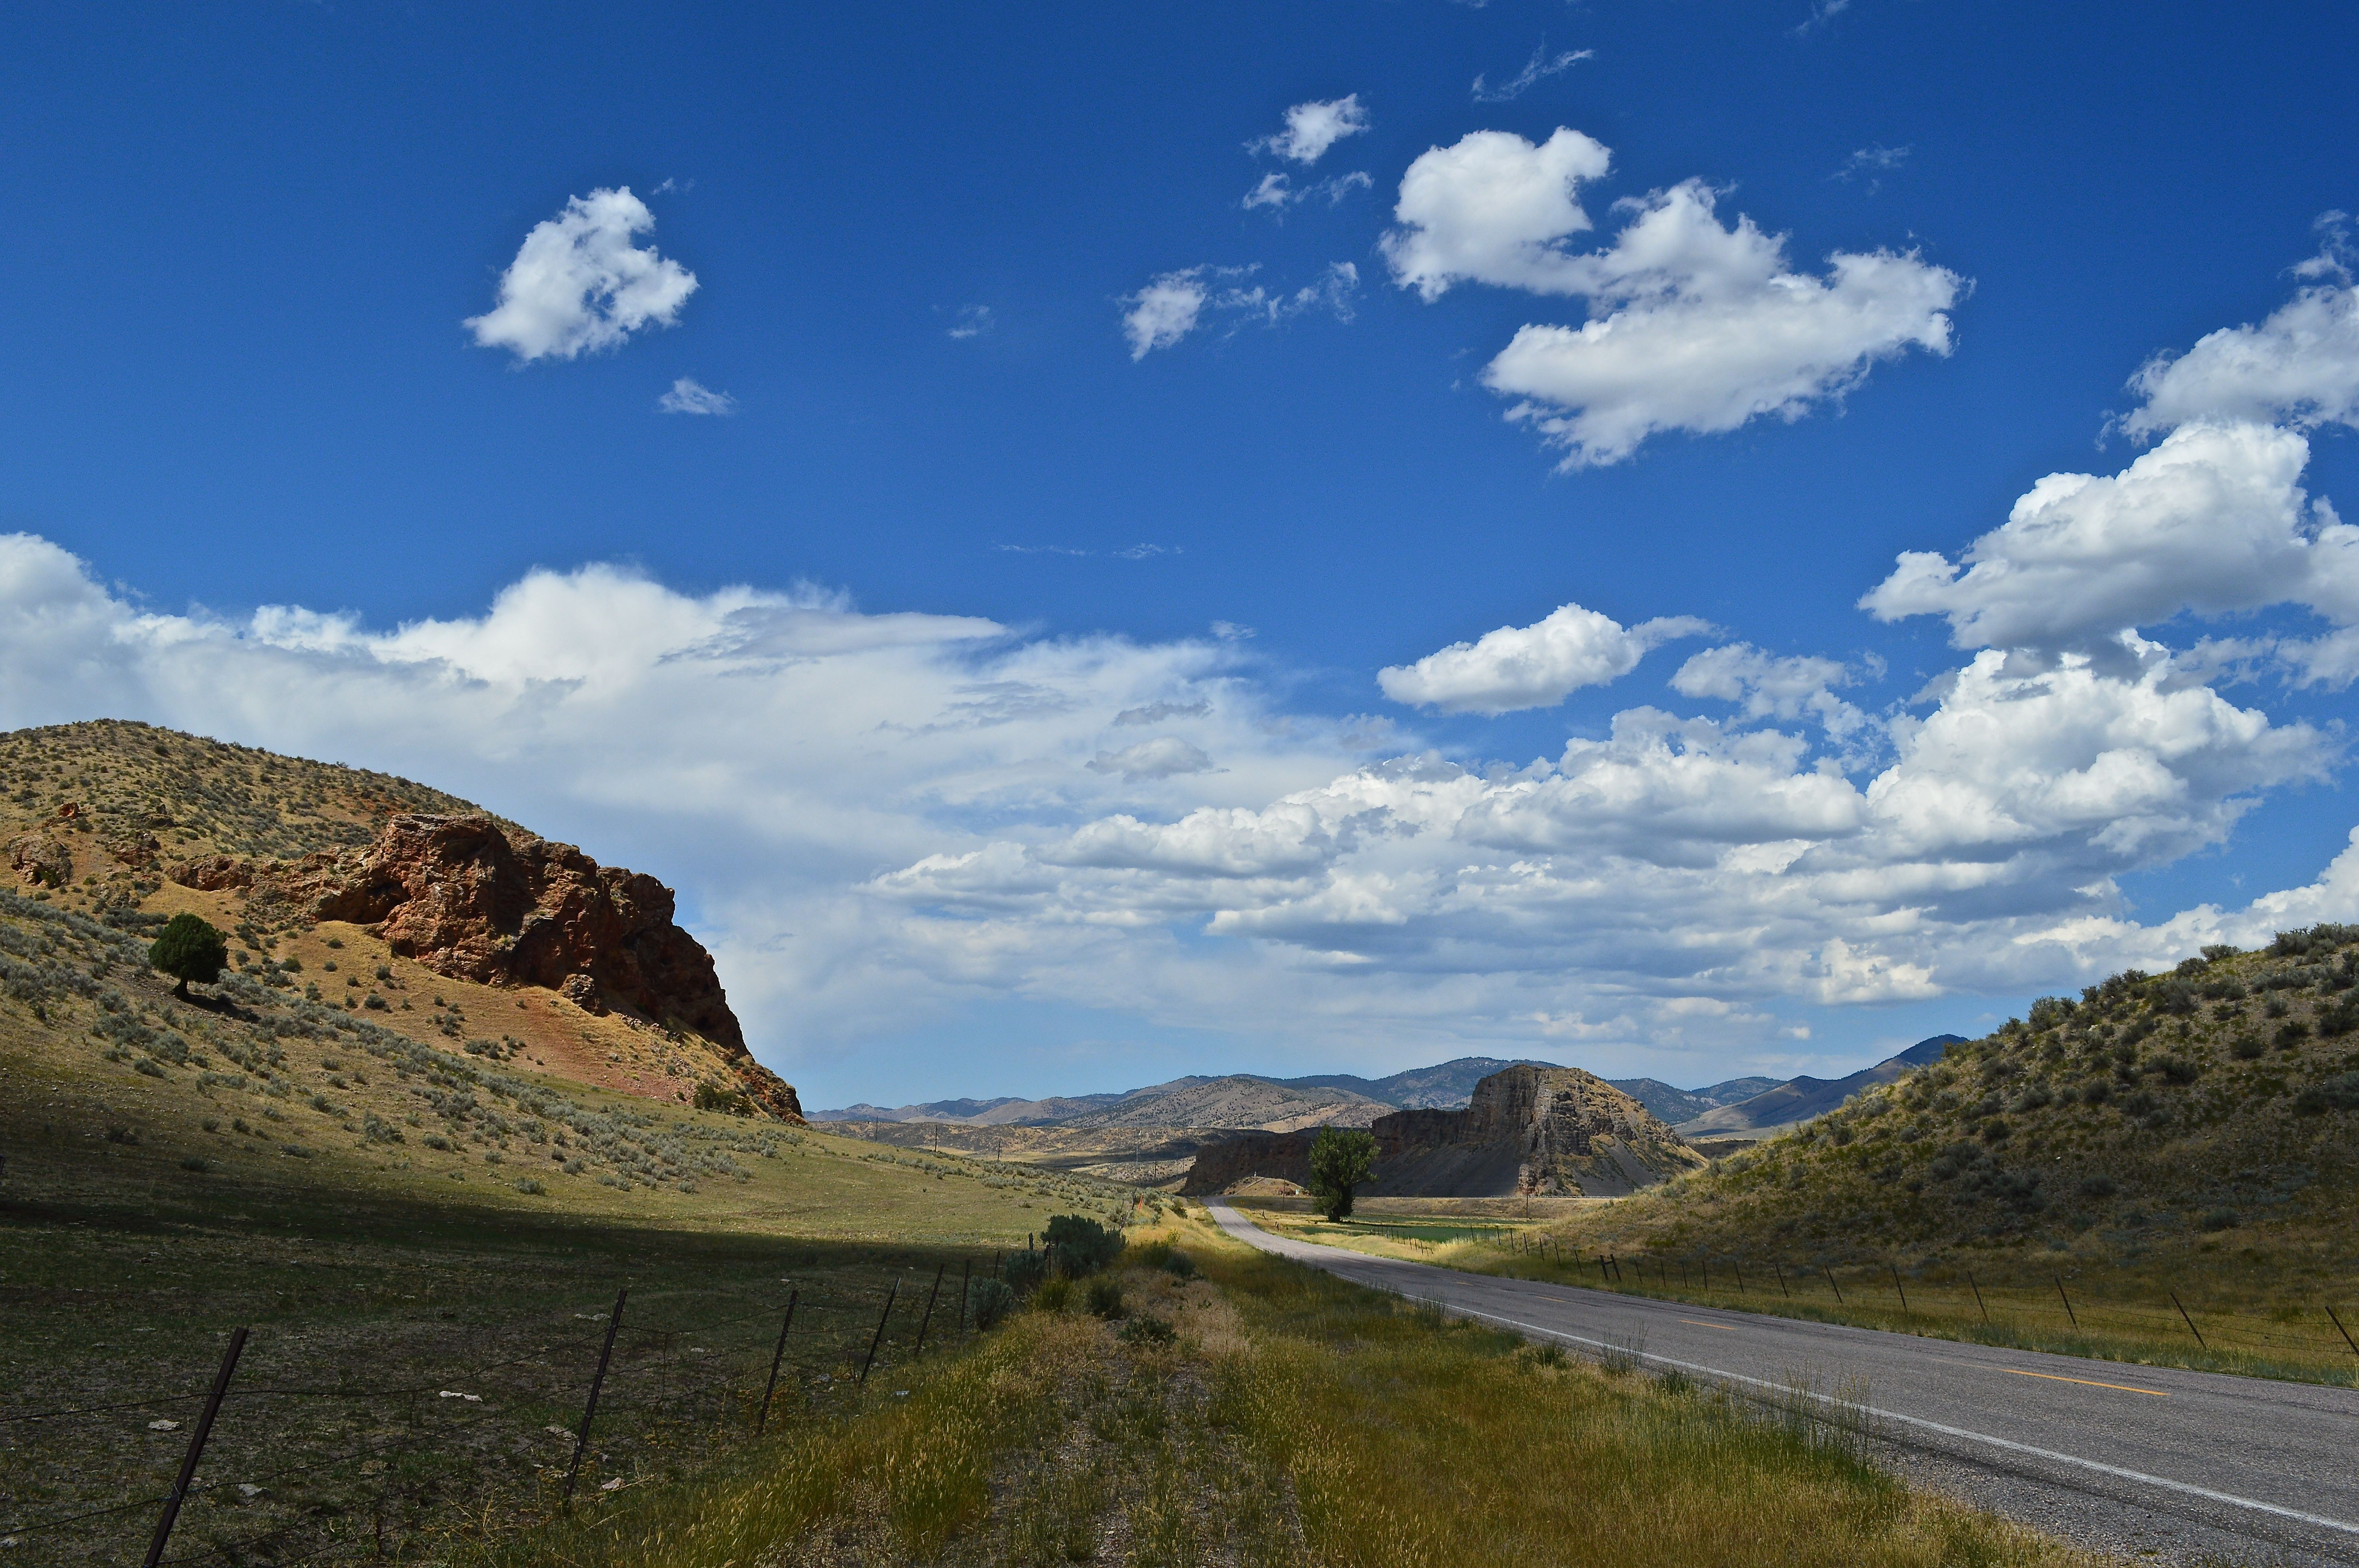 The bonneville flood and idahos red rock pass epod a service of redrock42918aug14 publicscrutiny Choice Image